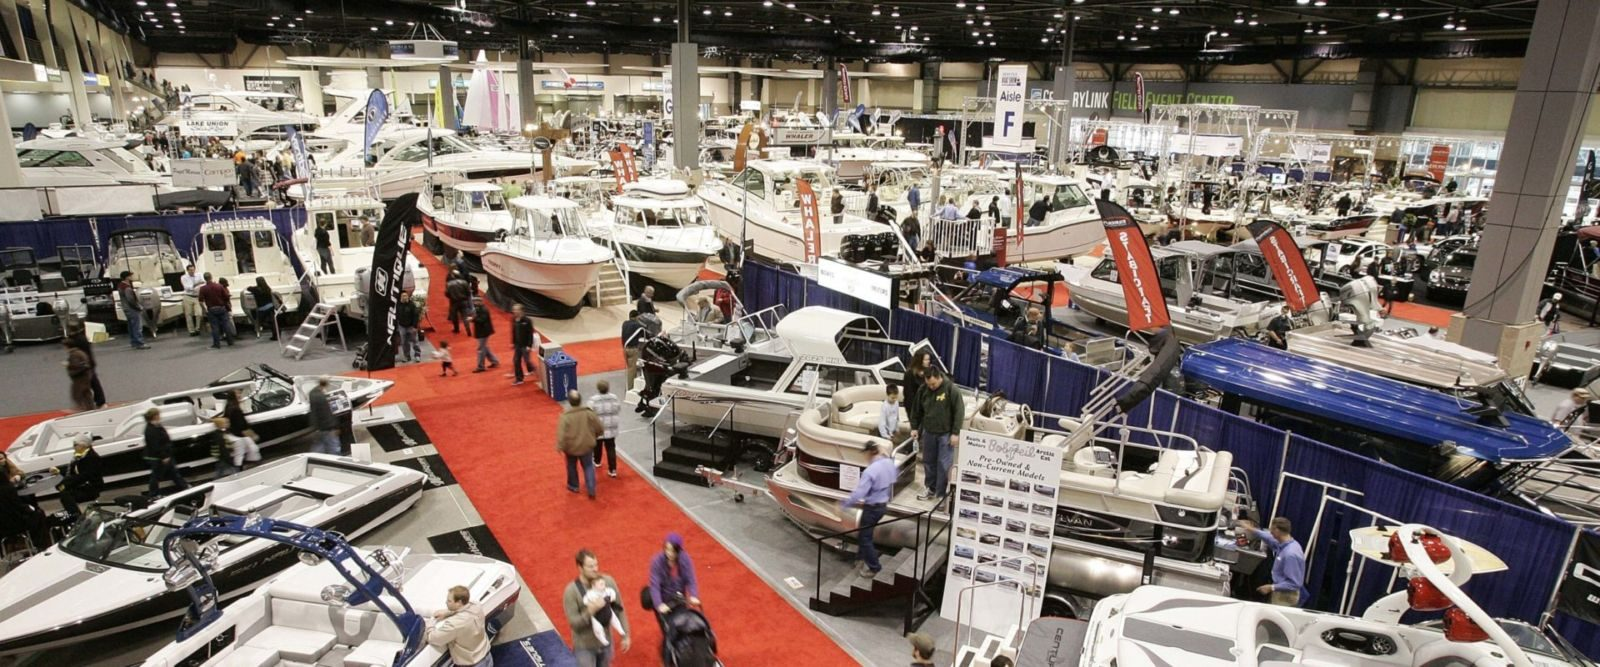 Seattle Boat Show 2020 Dates.Seattle Boat Show Emerald Pacific Yachts